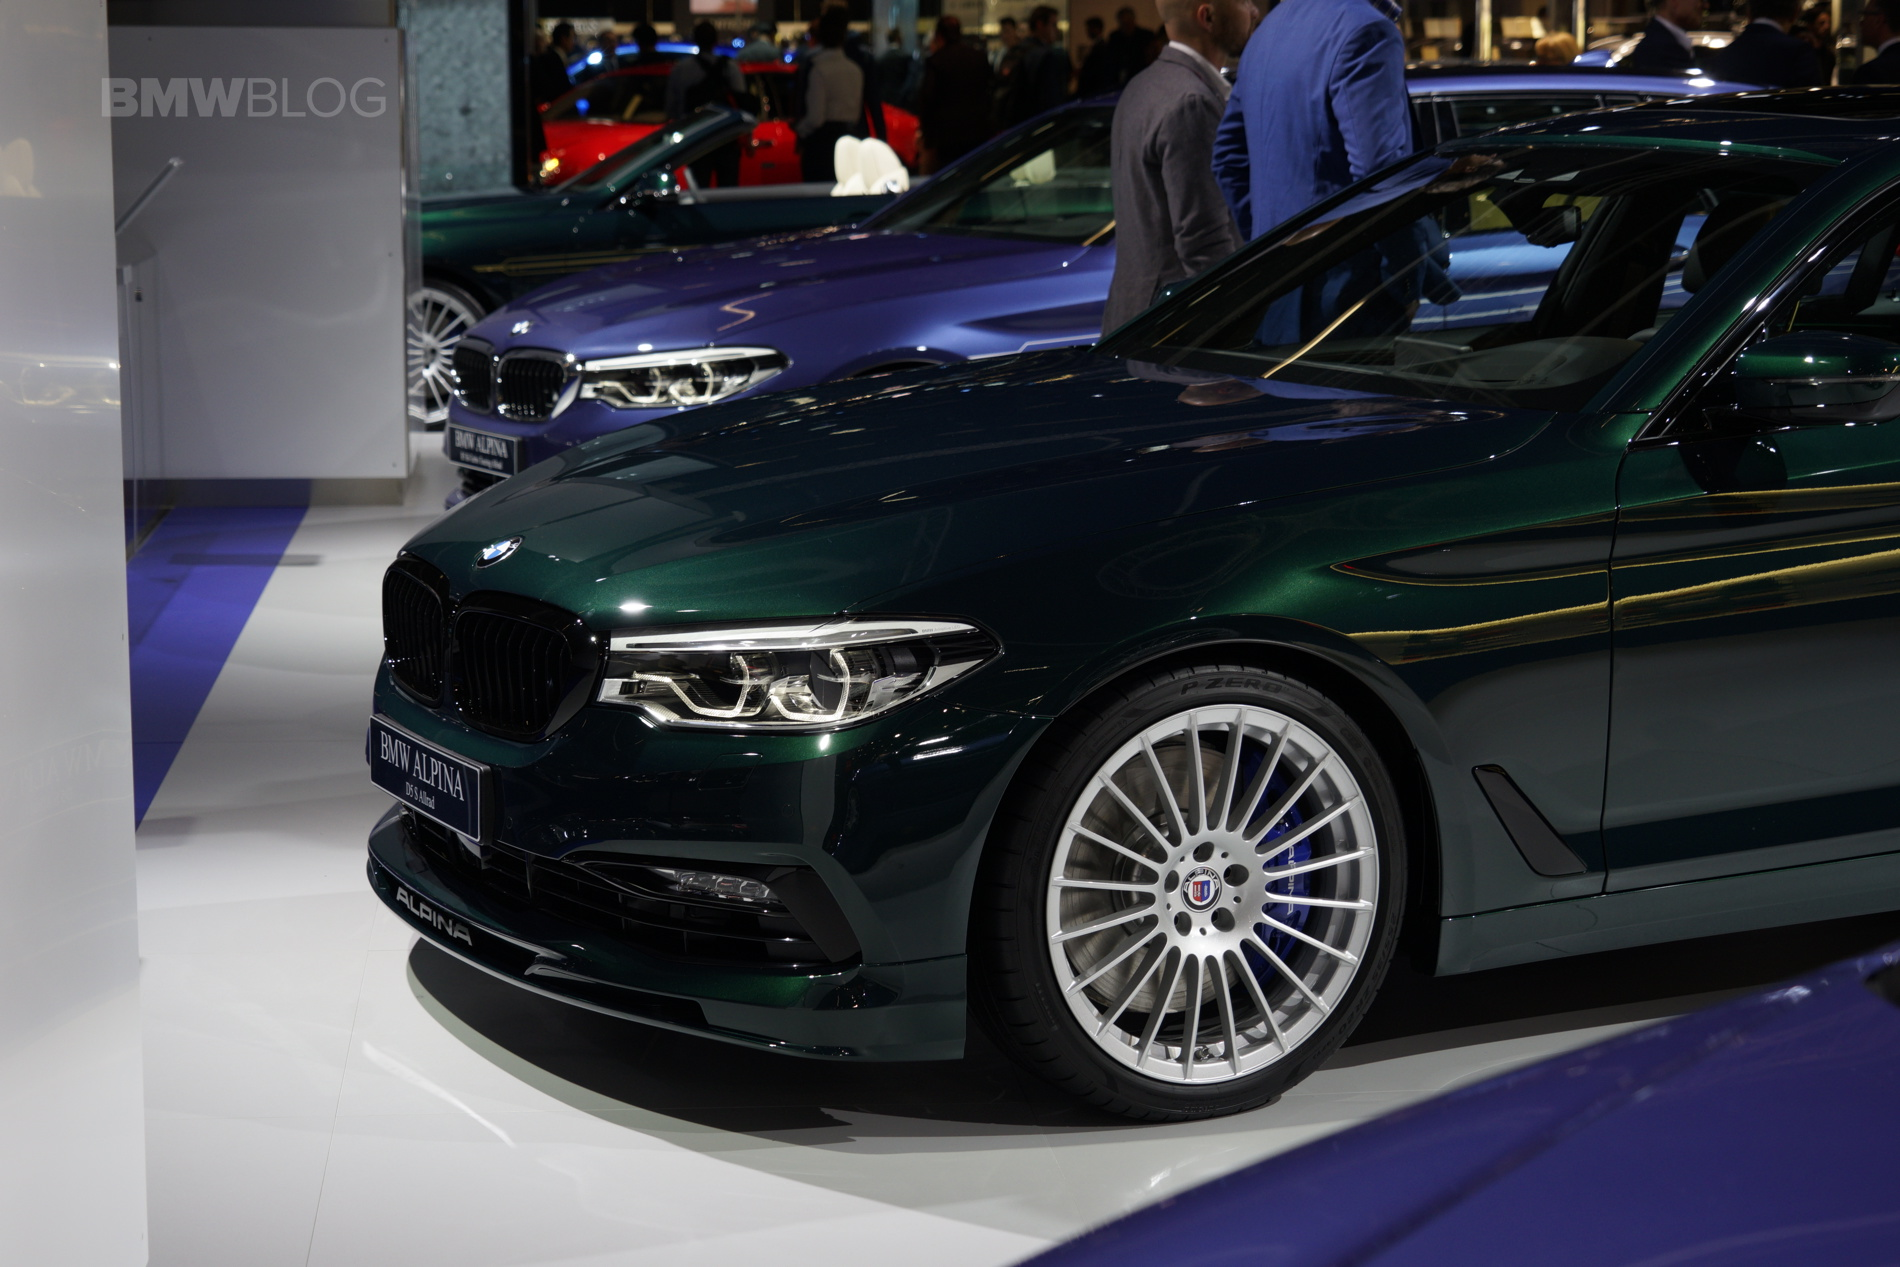 2017 Frankfurt Auto Show Bmw Alpina D5 S G30 With 388